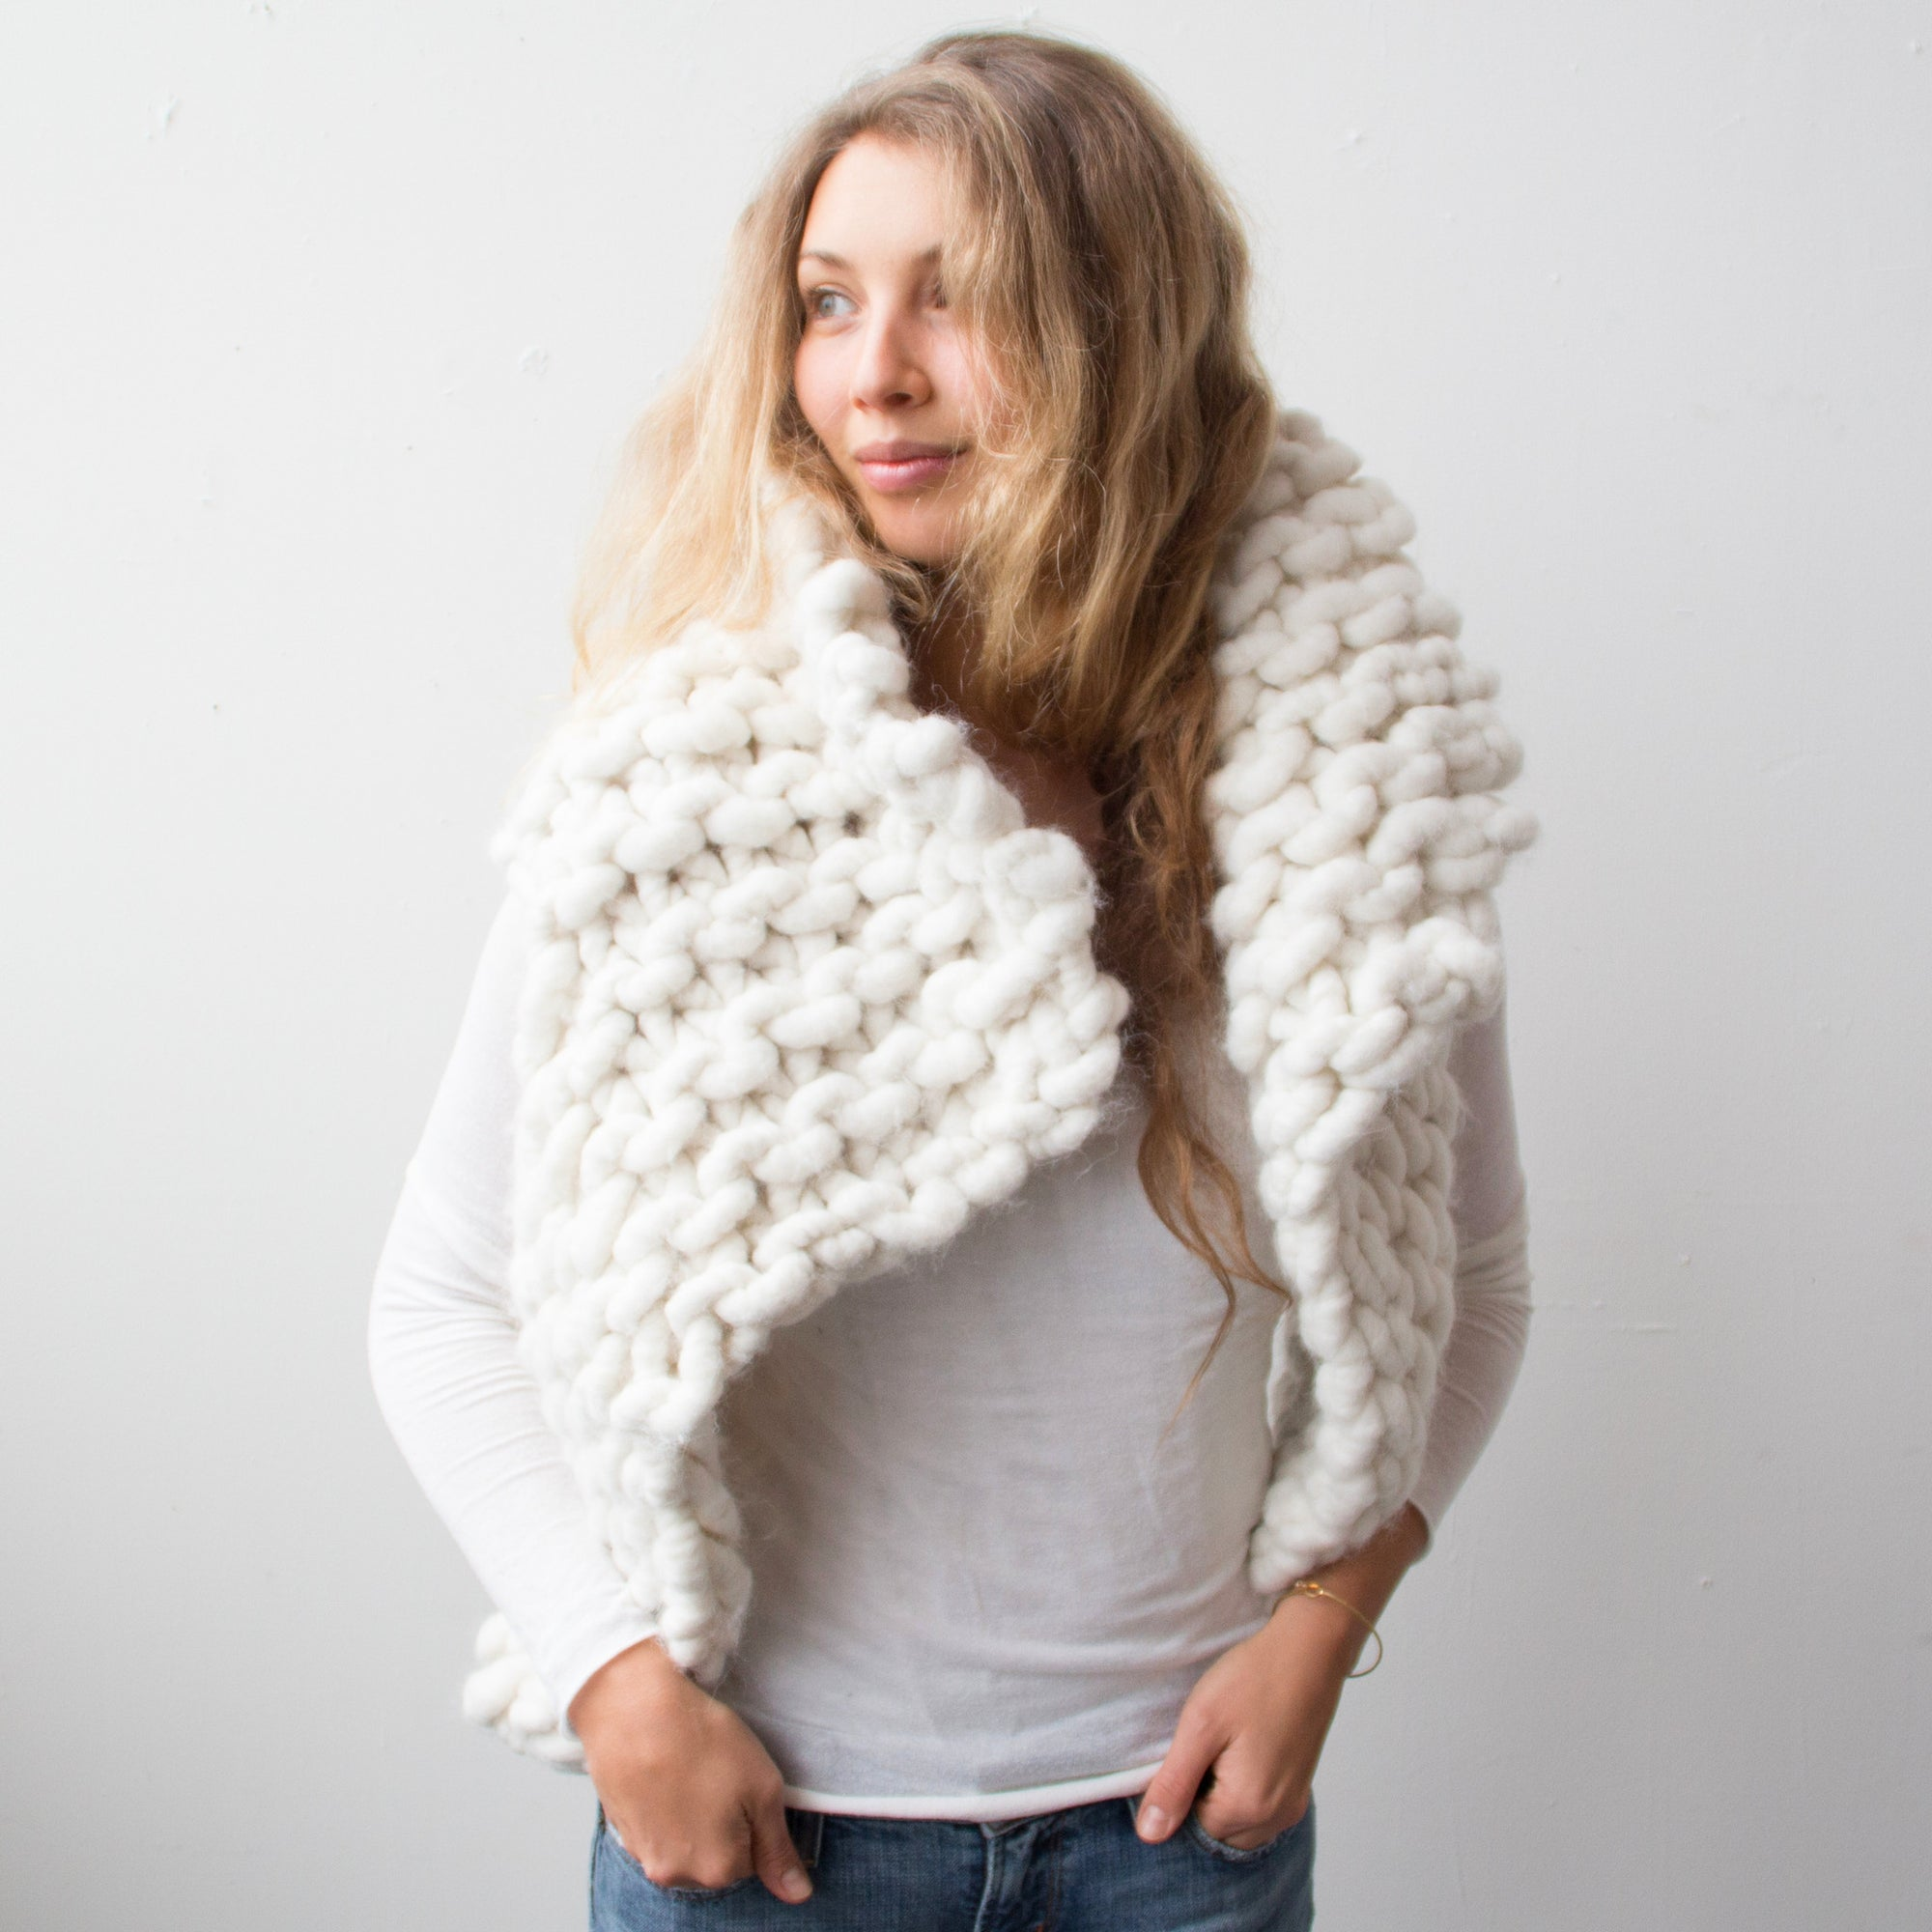 Chunky knit vest free knitting pattern